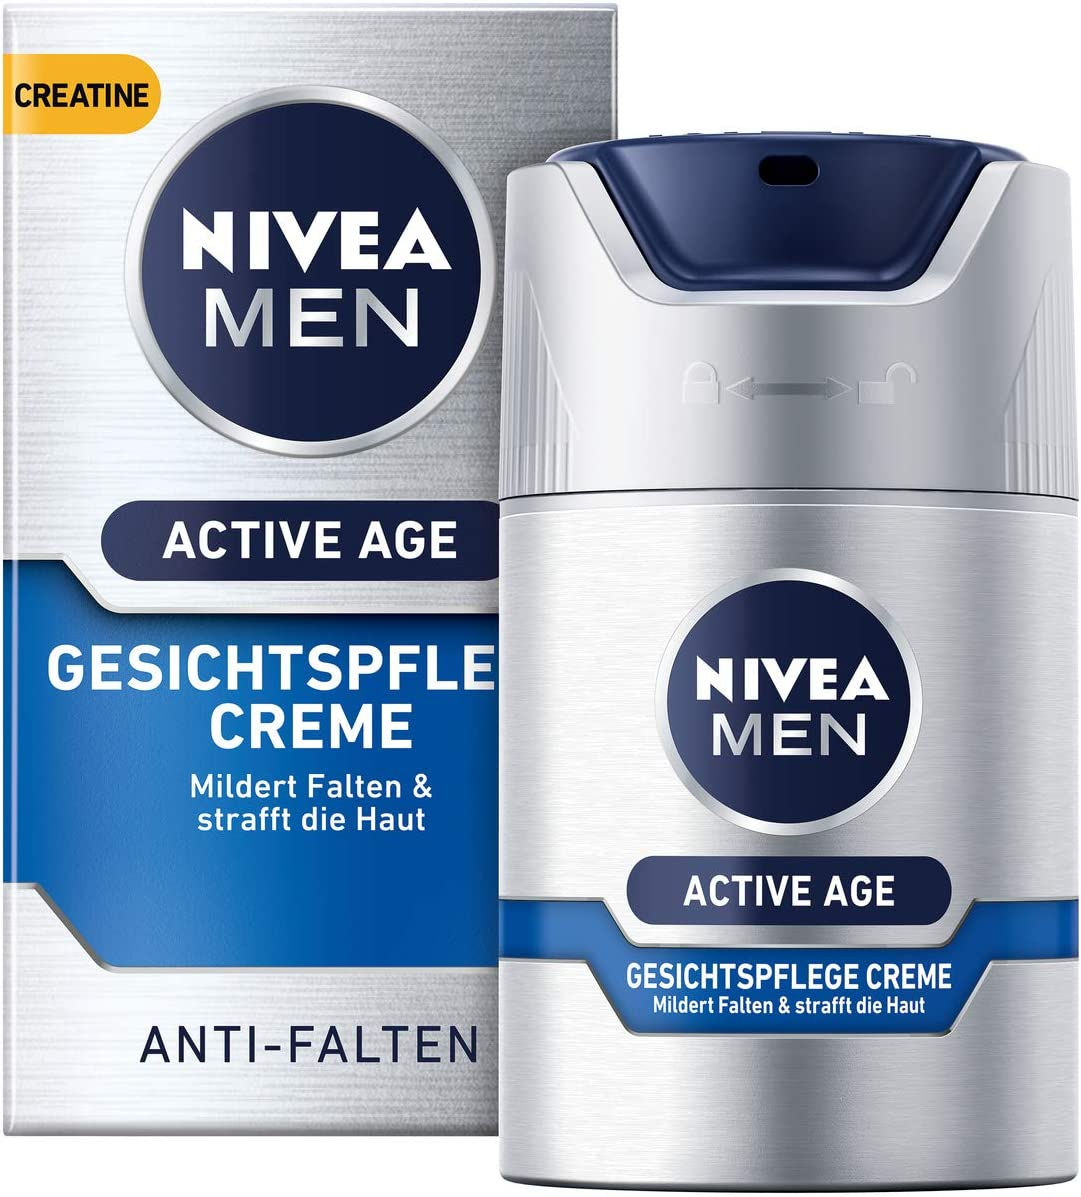 Crema facial Nivea Men Active Age en pack de 1 (1 x 50 ml), crema ...